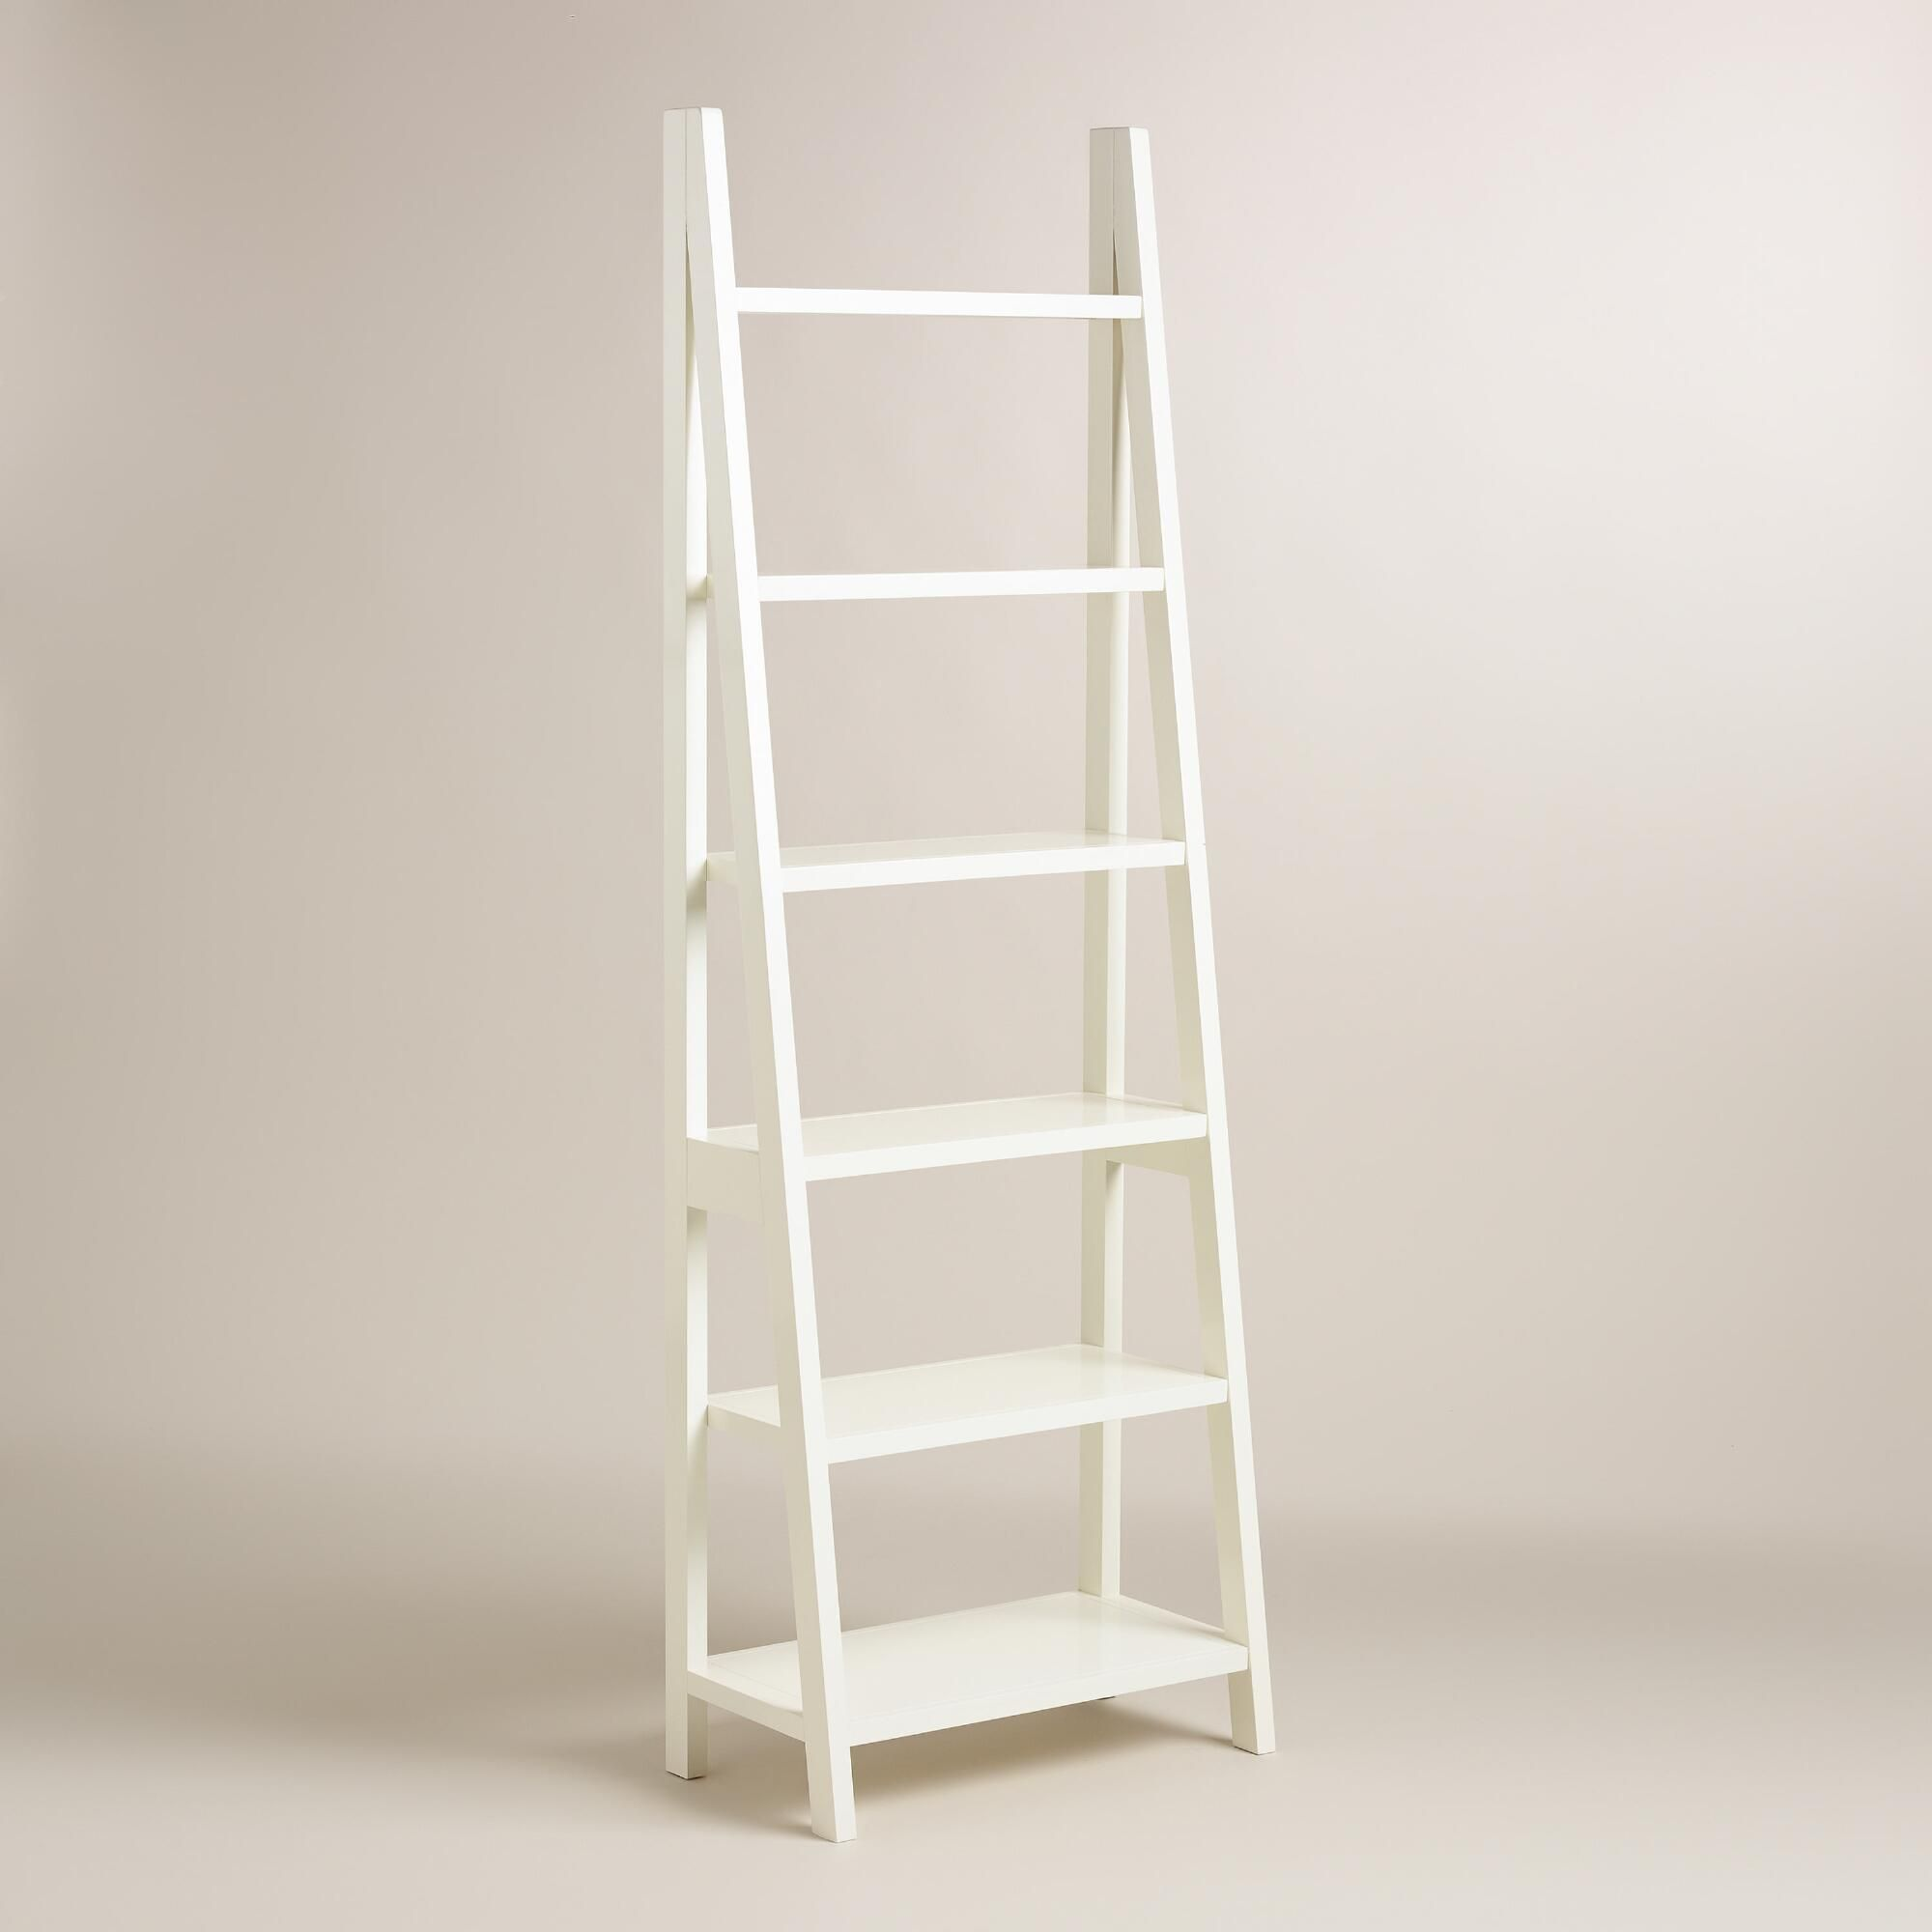 Our Leaning Bookshelf Is A E Saving Storage Solution That S Ideal For Compact Areas